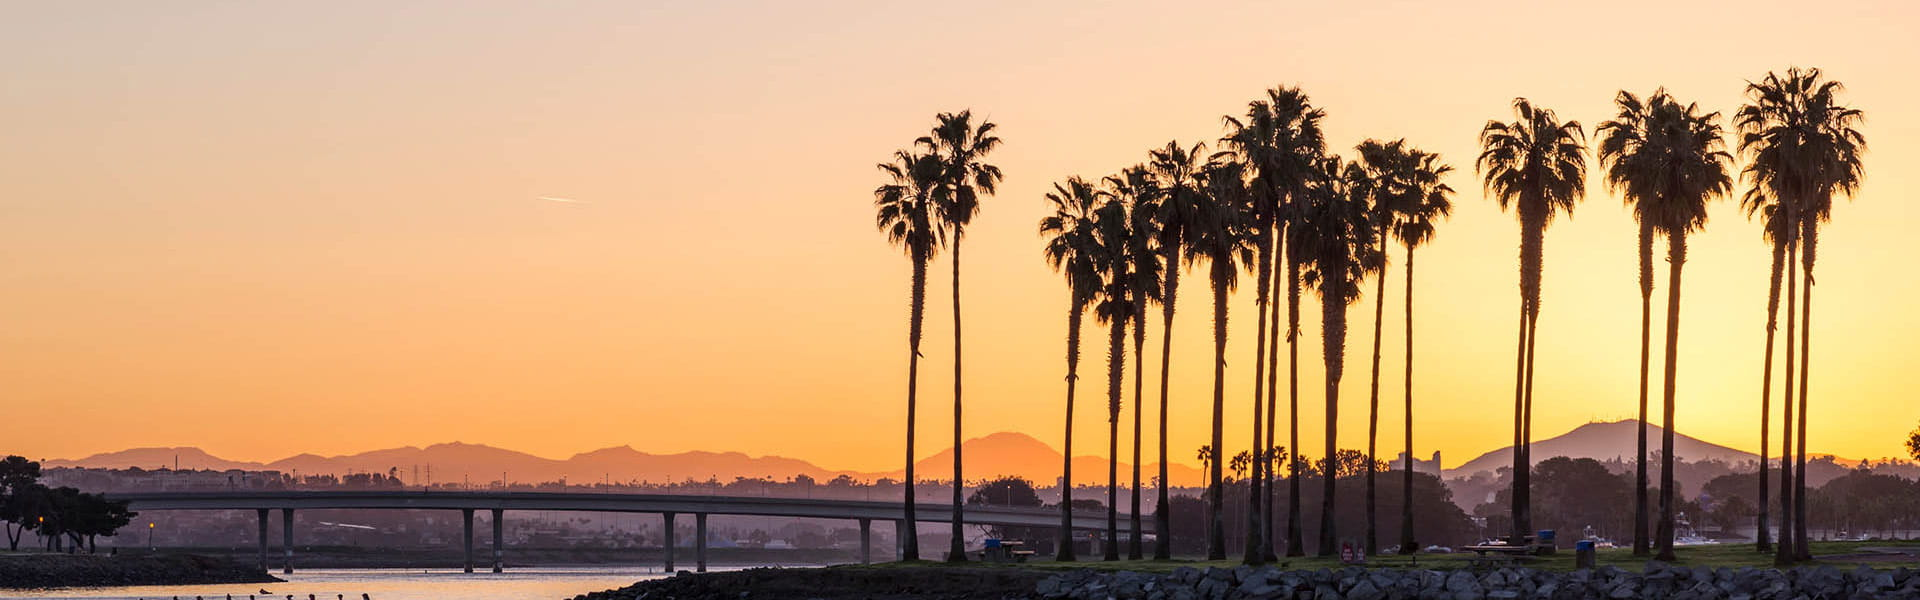 California river palm trees at sunset